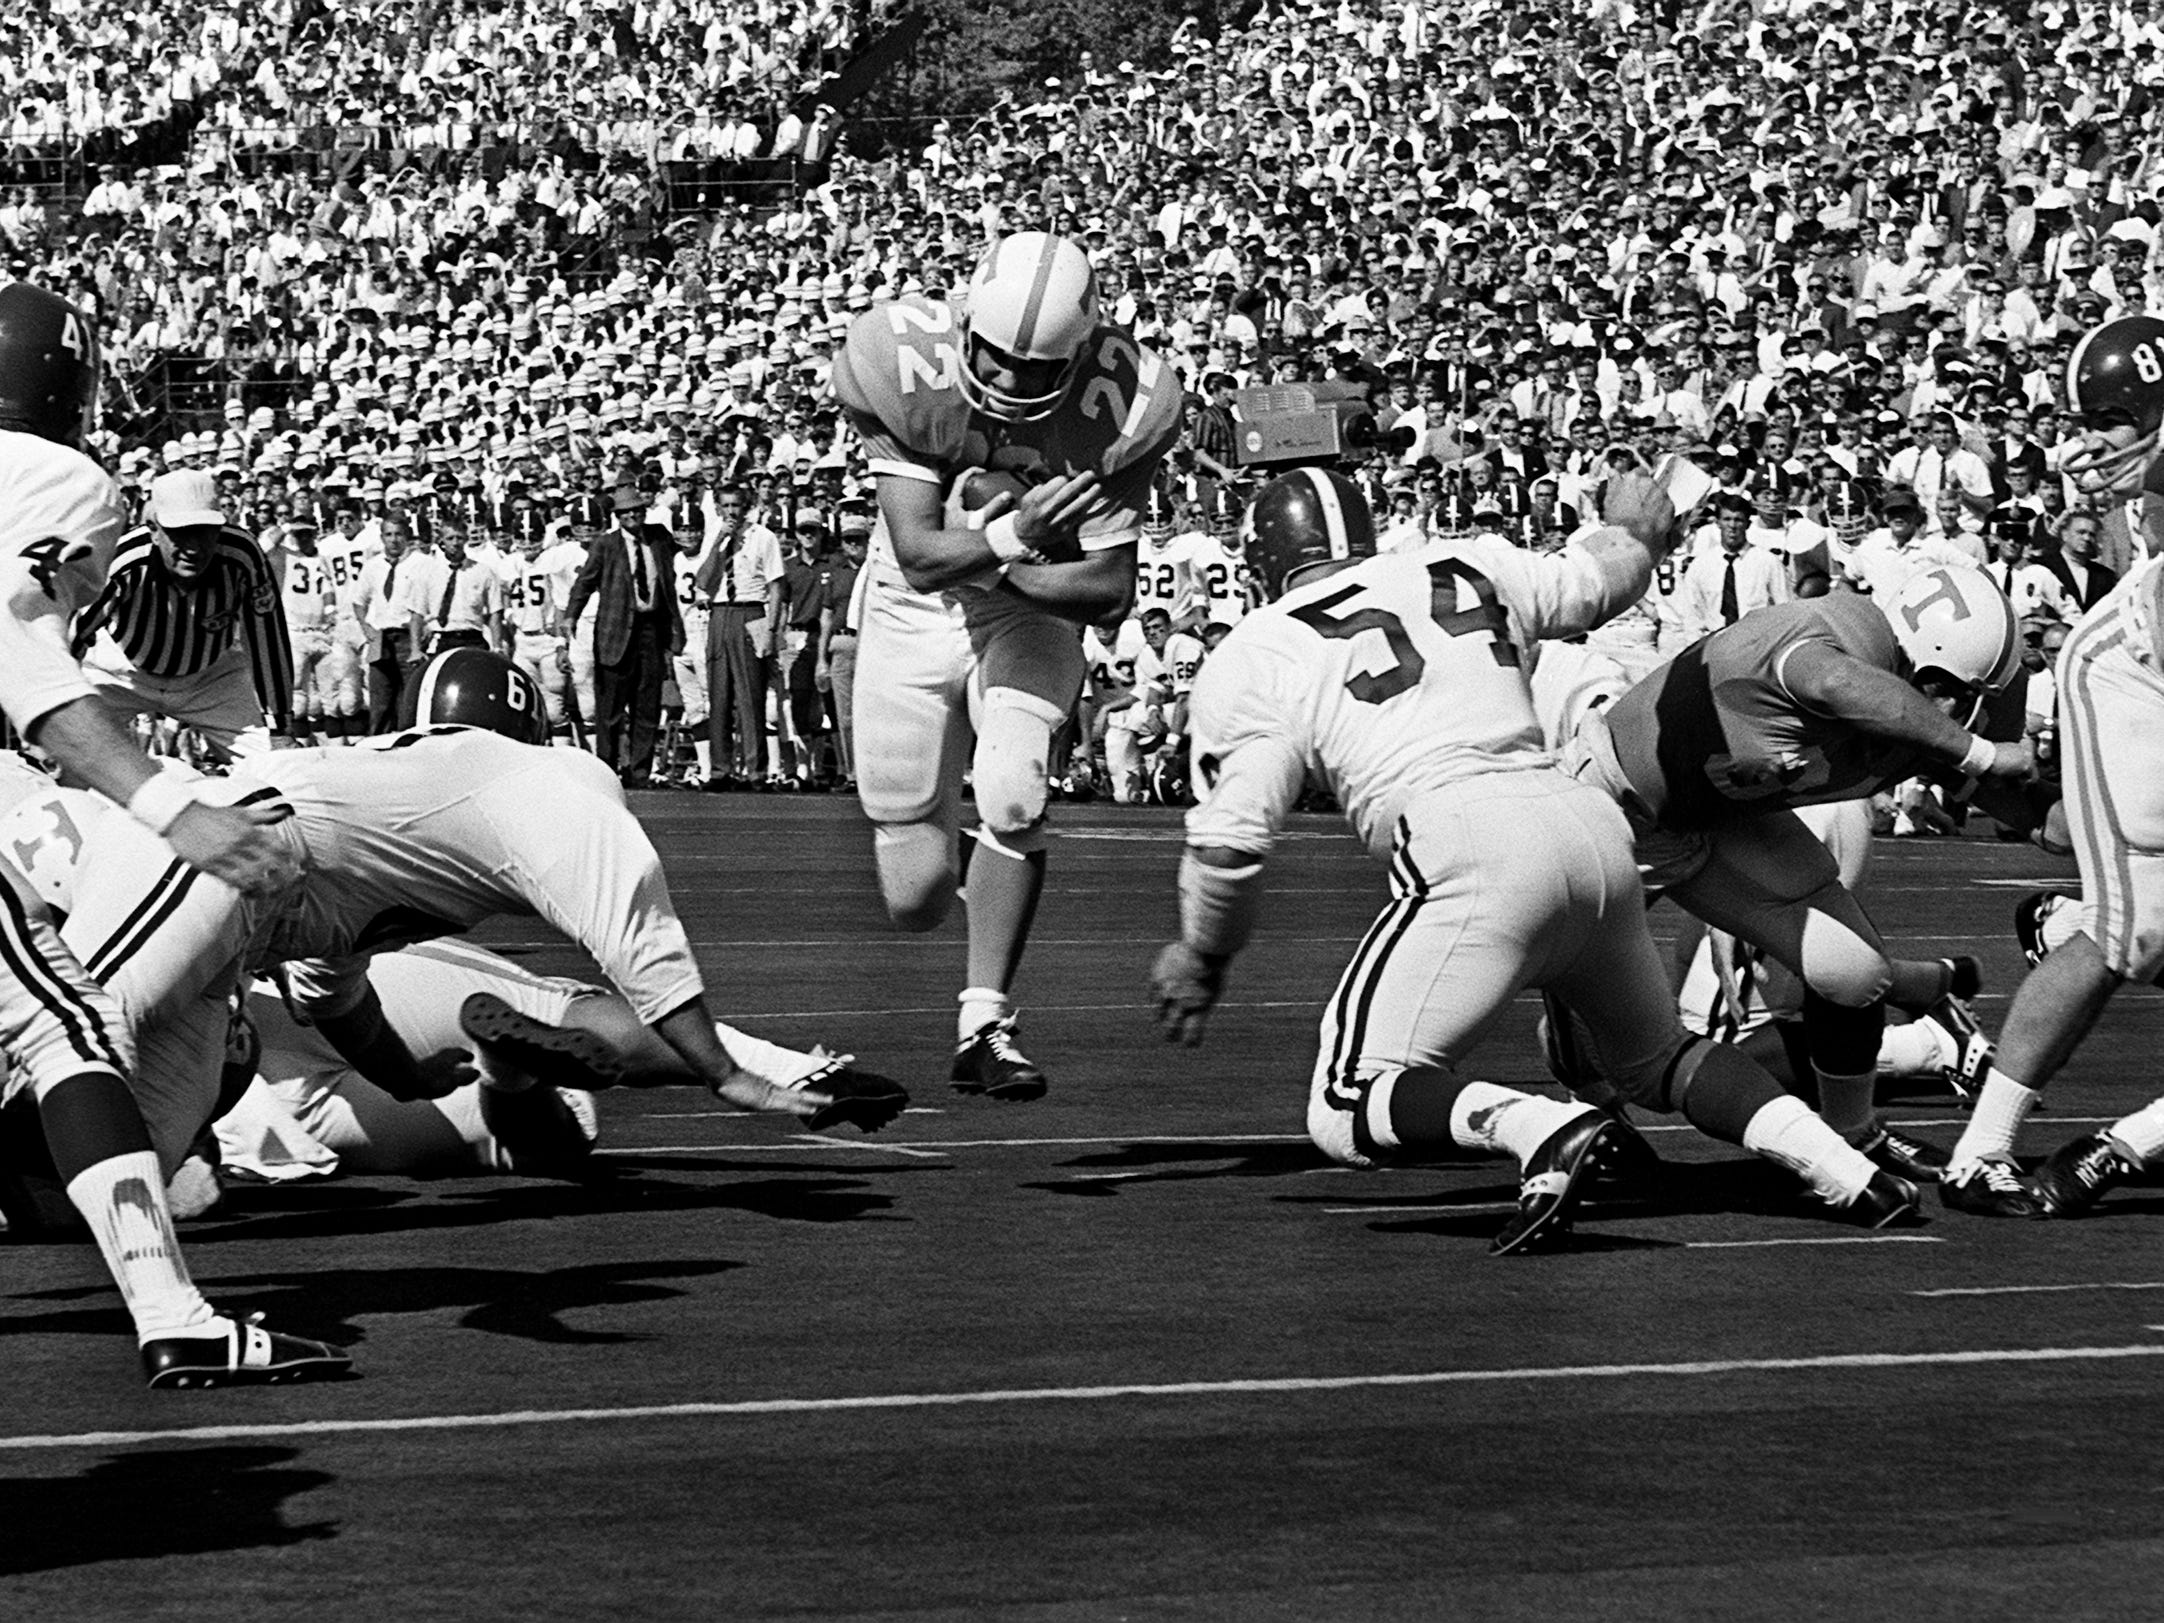 Tennessee senior back Richmond Flowers (22) heads for the hole but has Alabama linebacker Mike Hall (54) waiting for him. Flowers played his last game against his home state school by picking up 74 yards on 20 rushes and 37 more yards on five passes at Neyland Stadium Oct. 19, 1968.